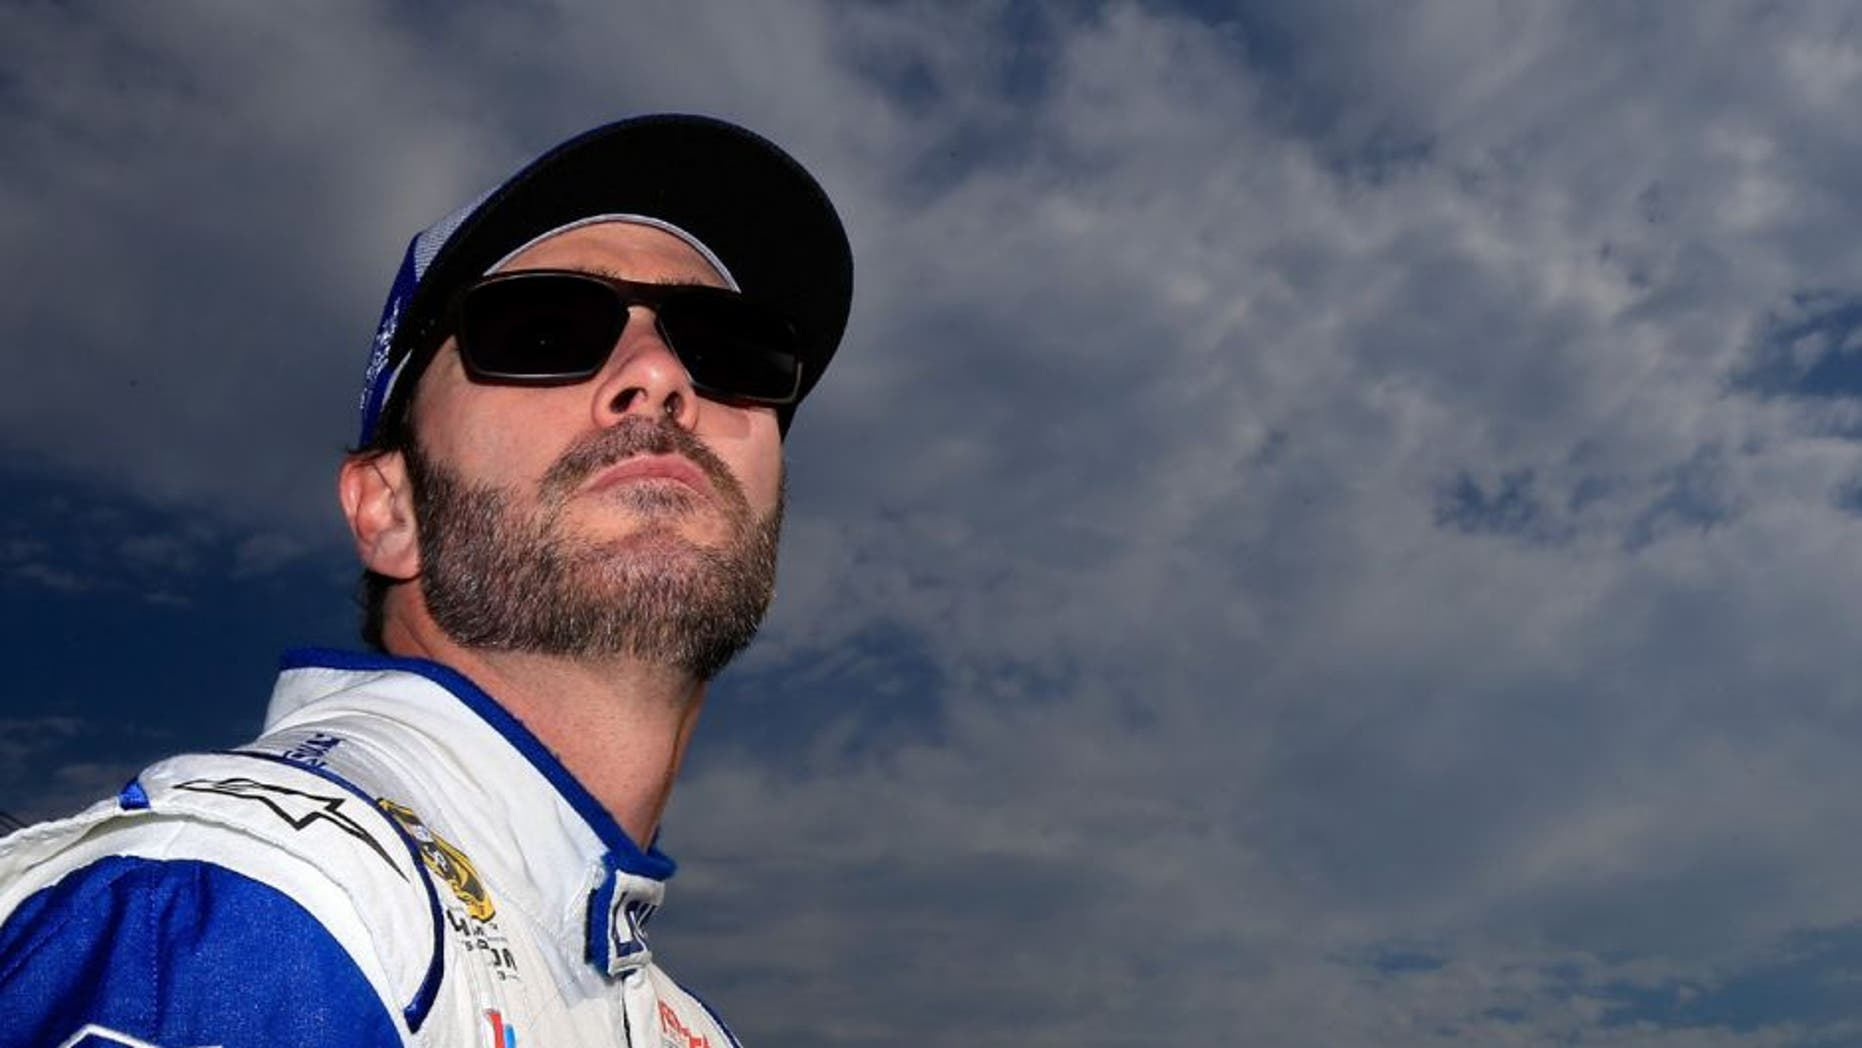 LOUDON, NH - JULY 15: Jimmie Johnson, driver of the #48 Lowe's Chevrolet, stands on the grid during qualifying for the NASCAR Sprint Cup Series New Hampshire 301 at New Hampshire Motor Speedway on July 16, 2016 in Loudon, New Hampshire. (Photo by Chris Trotman/Getty Images)